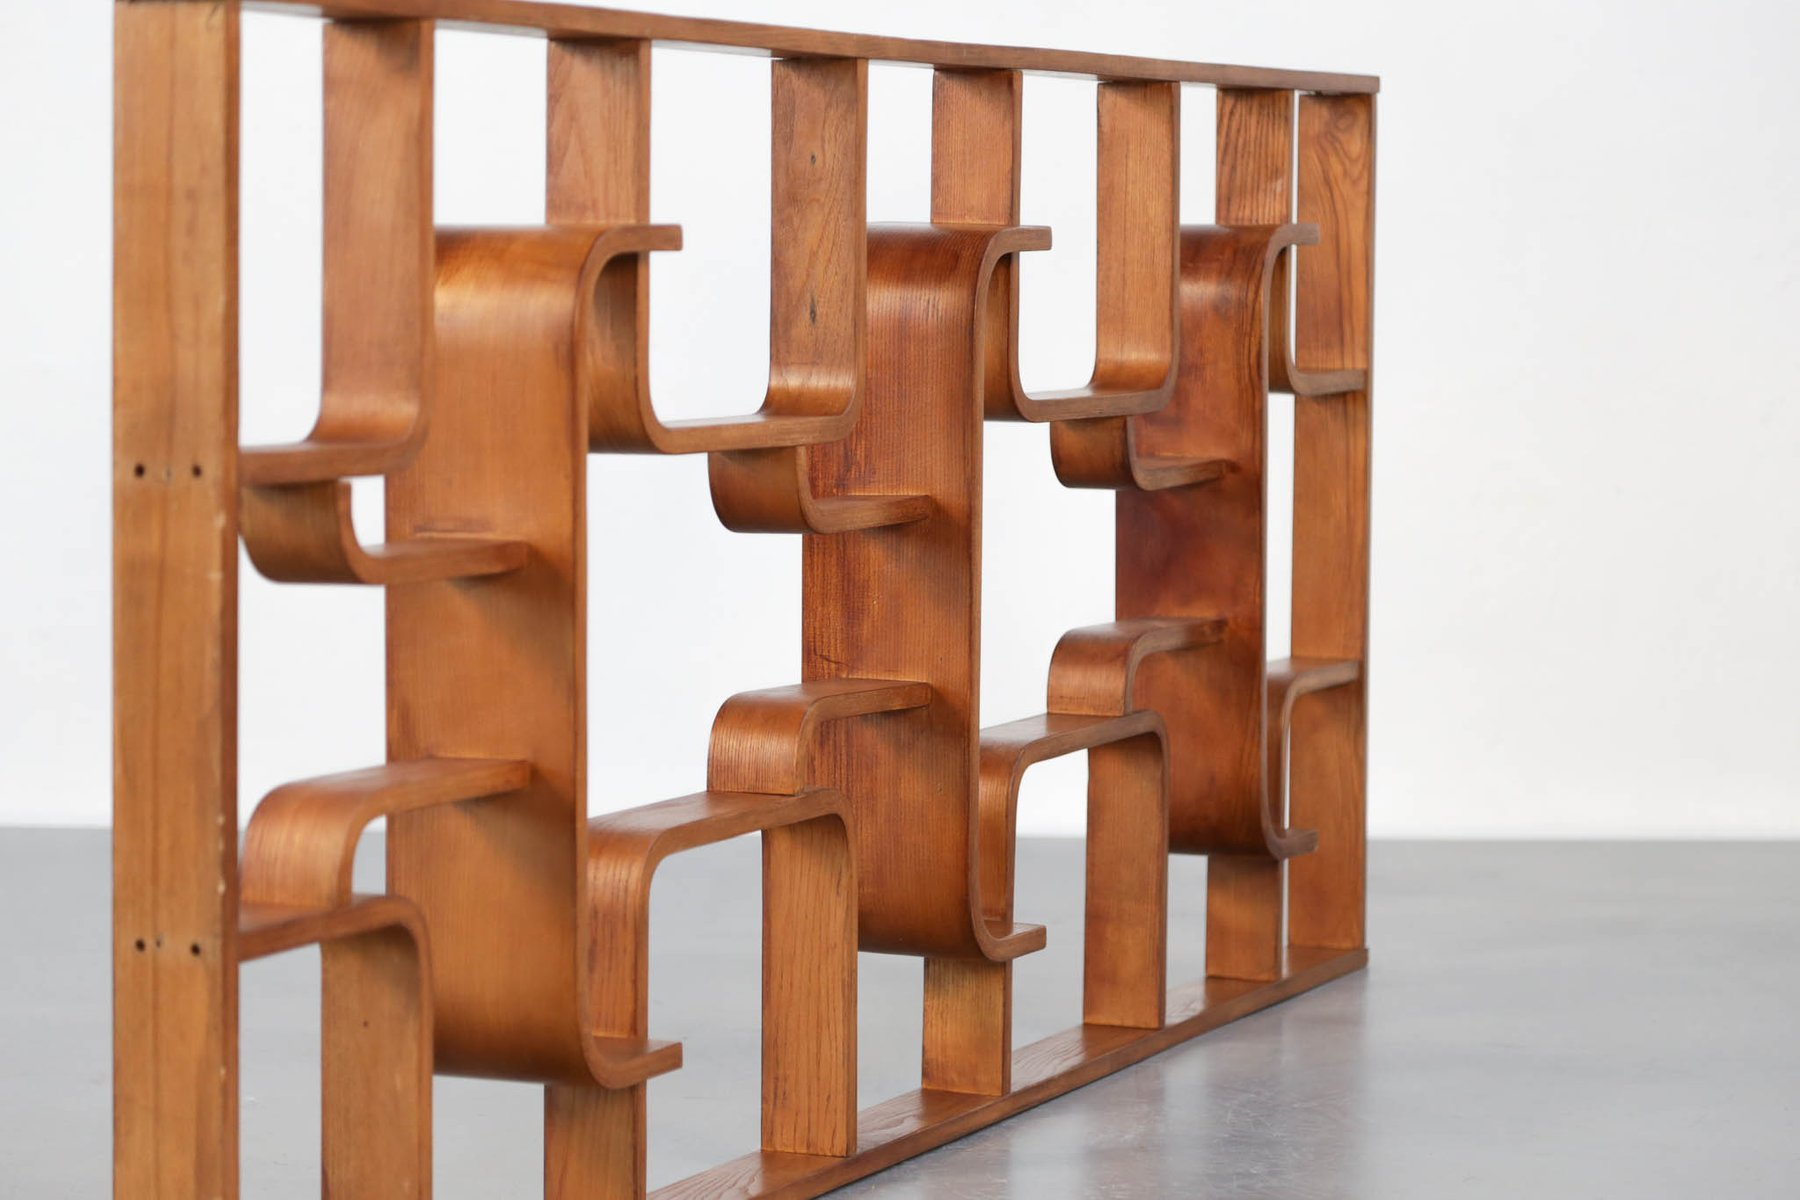 Vintage Plywood Room Dividers By Ludvik Volak For